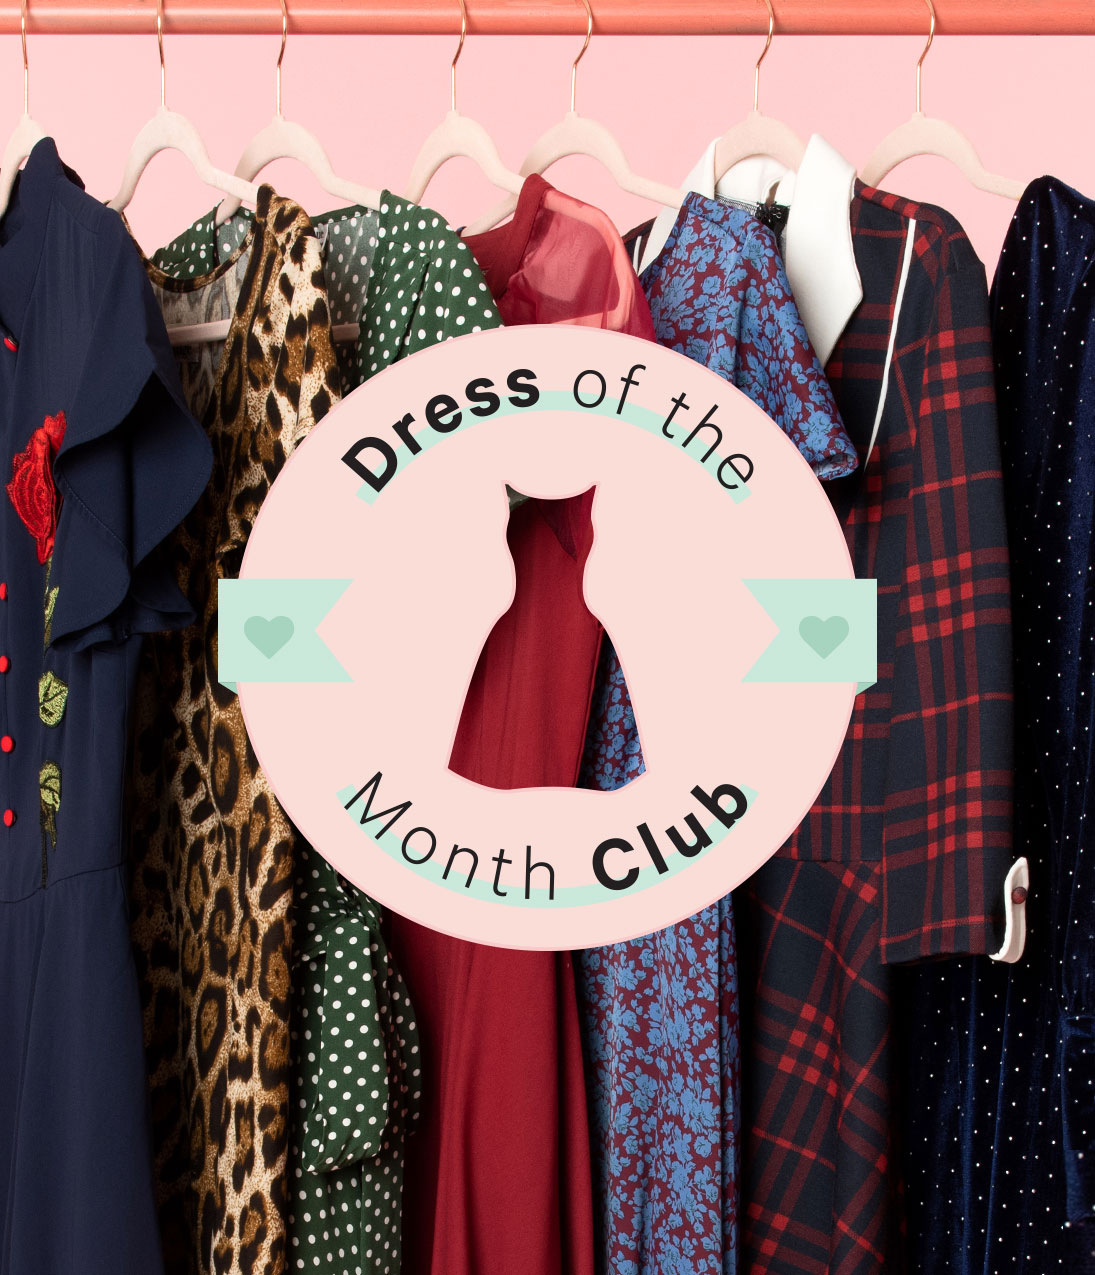 Dress Of The Month Club 3 Month Membership